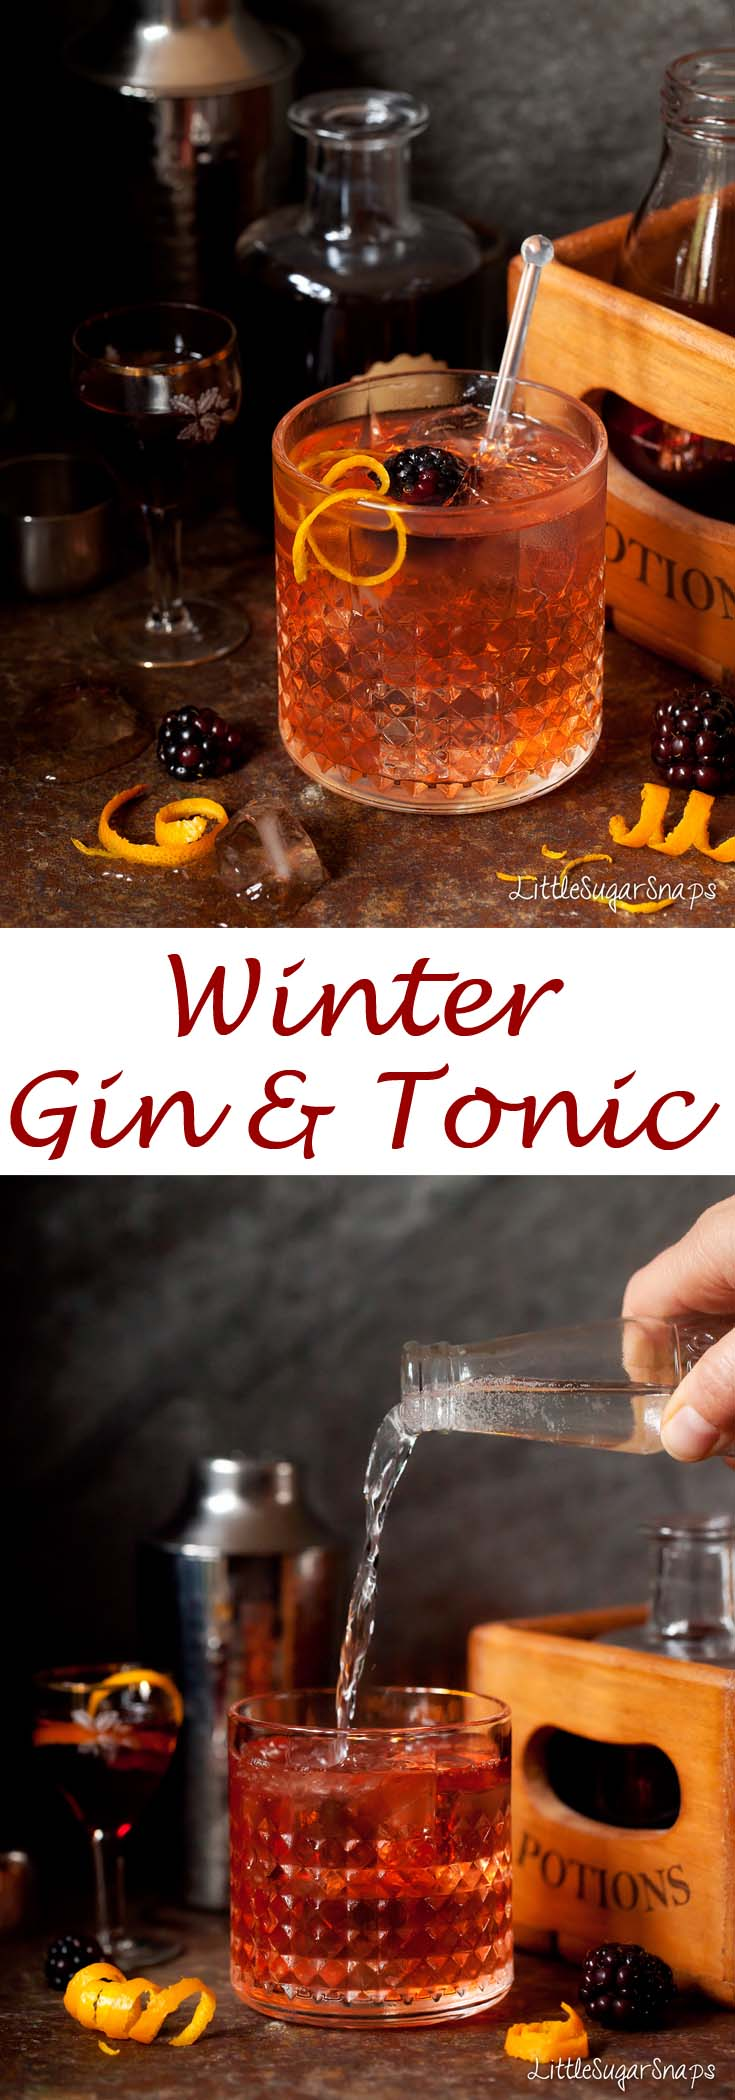 The Winter Gin & Tonic is a twist on the classic G&T. A dash of elderflower liqueur, sloe gin & Campari team up with gin & tonic to create a drink with a pretty blush and a hint of fruit.